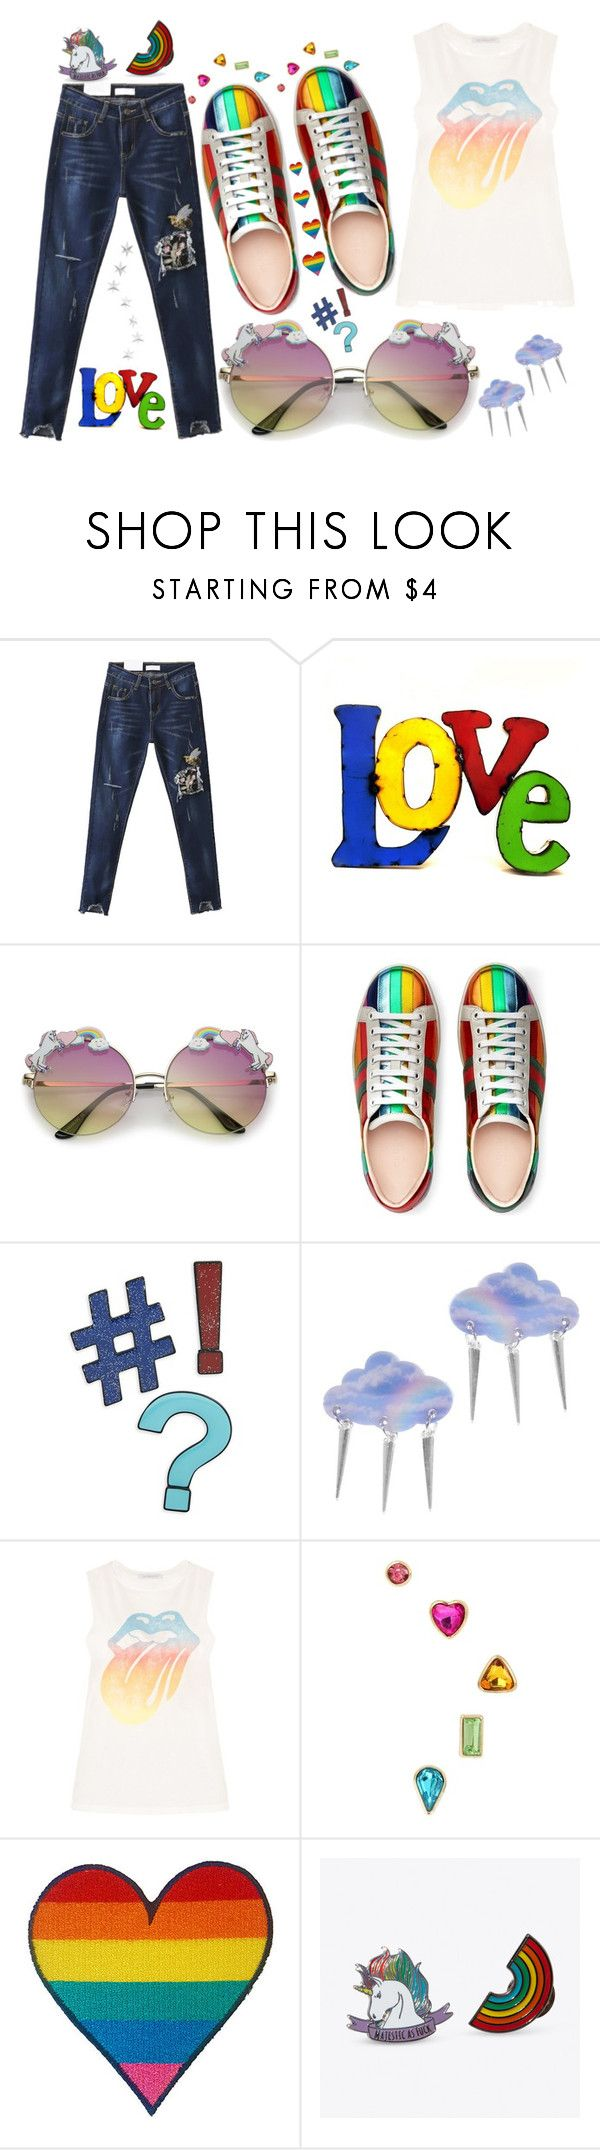 """""""Pride"""" by covrigel ❤ liked on Polyvore featuring WithChic, Rustic Arrow, Gucci, Design Lab, Suzywan DELUXE, Betsey Johnson, Punky Pins and pride"""